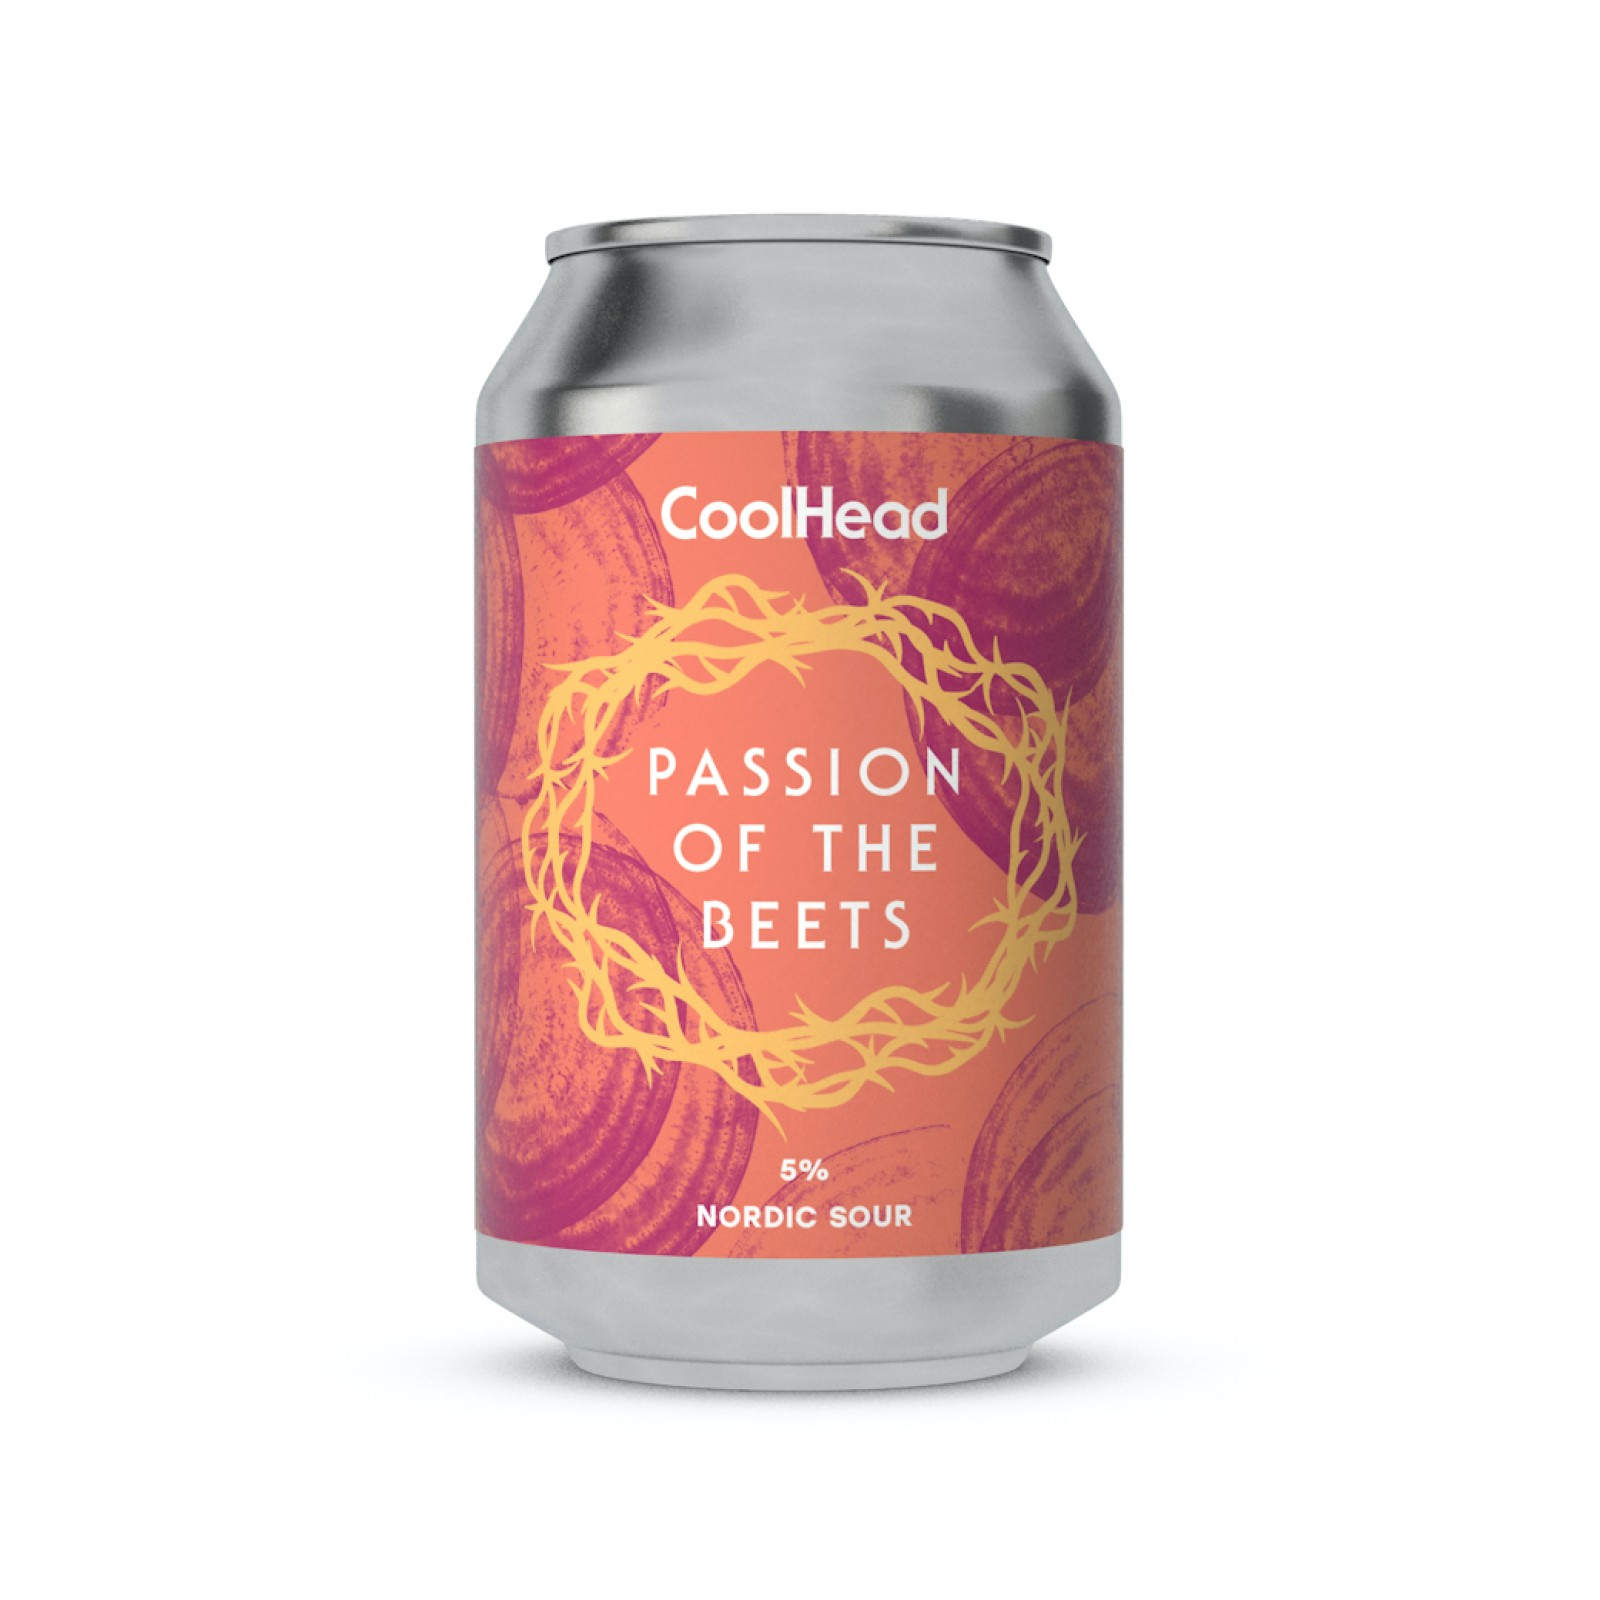 CoolHead Passion of the Beets Nordic Sour 5% - 0,33l can